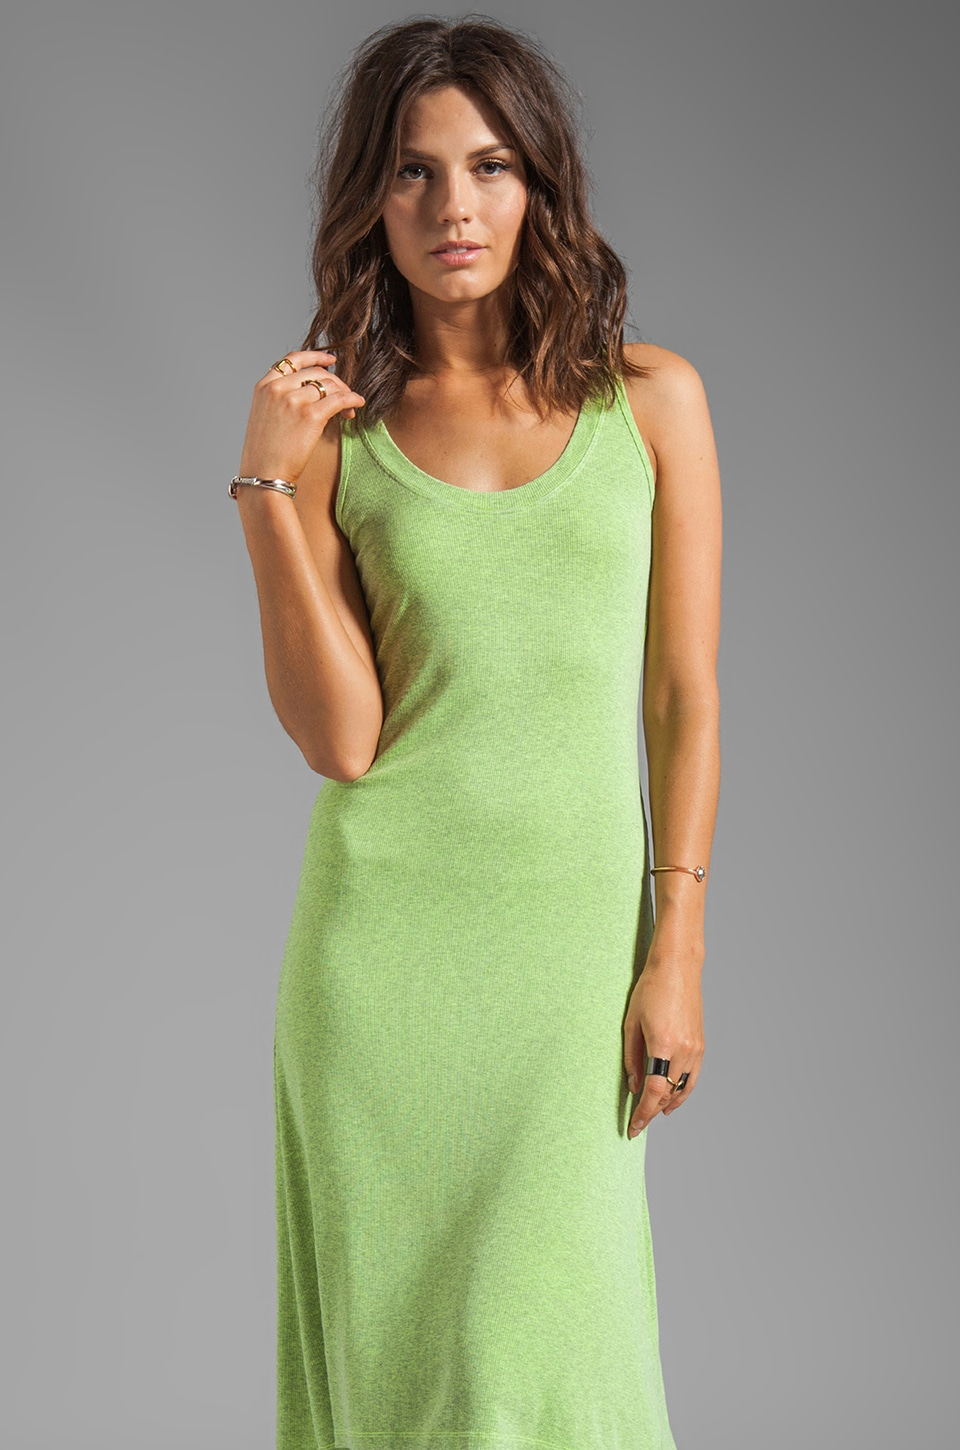 MONROW Rib Tank Dress in Neon Citron